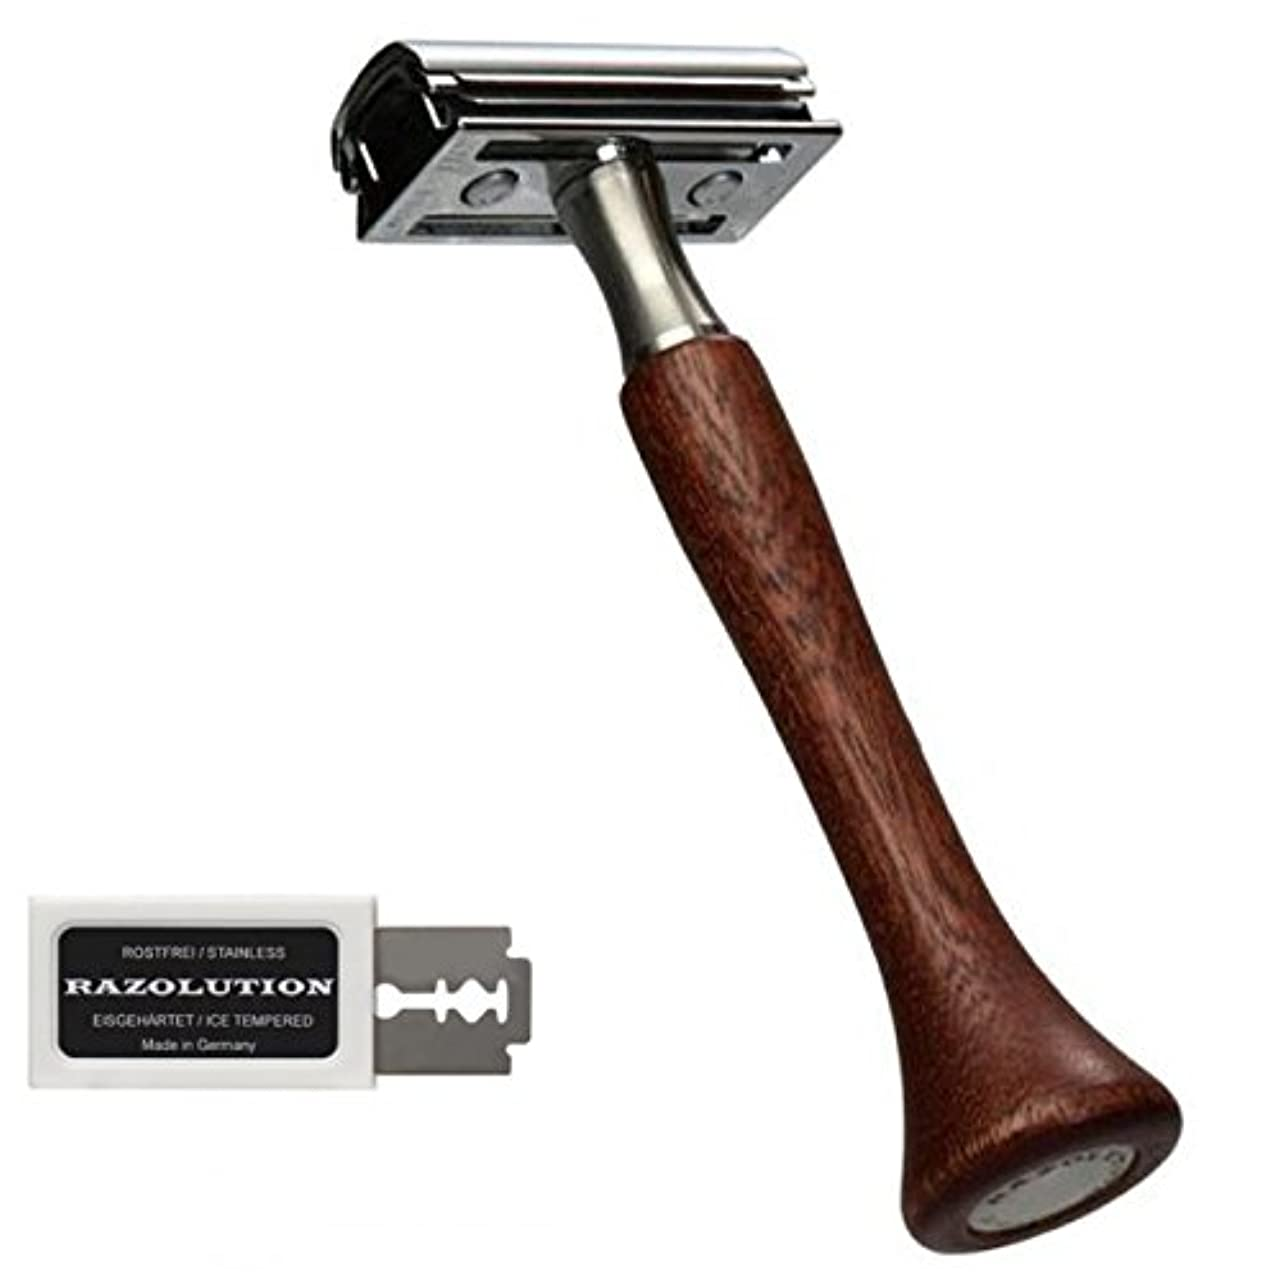 みがきますブッシュレシピRAZOLUTION 4Edge Safety razor, Mahogany handle